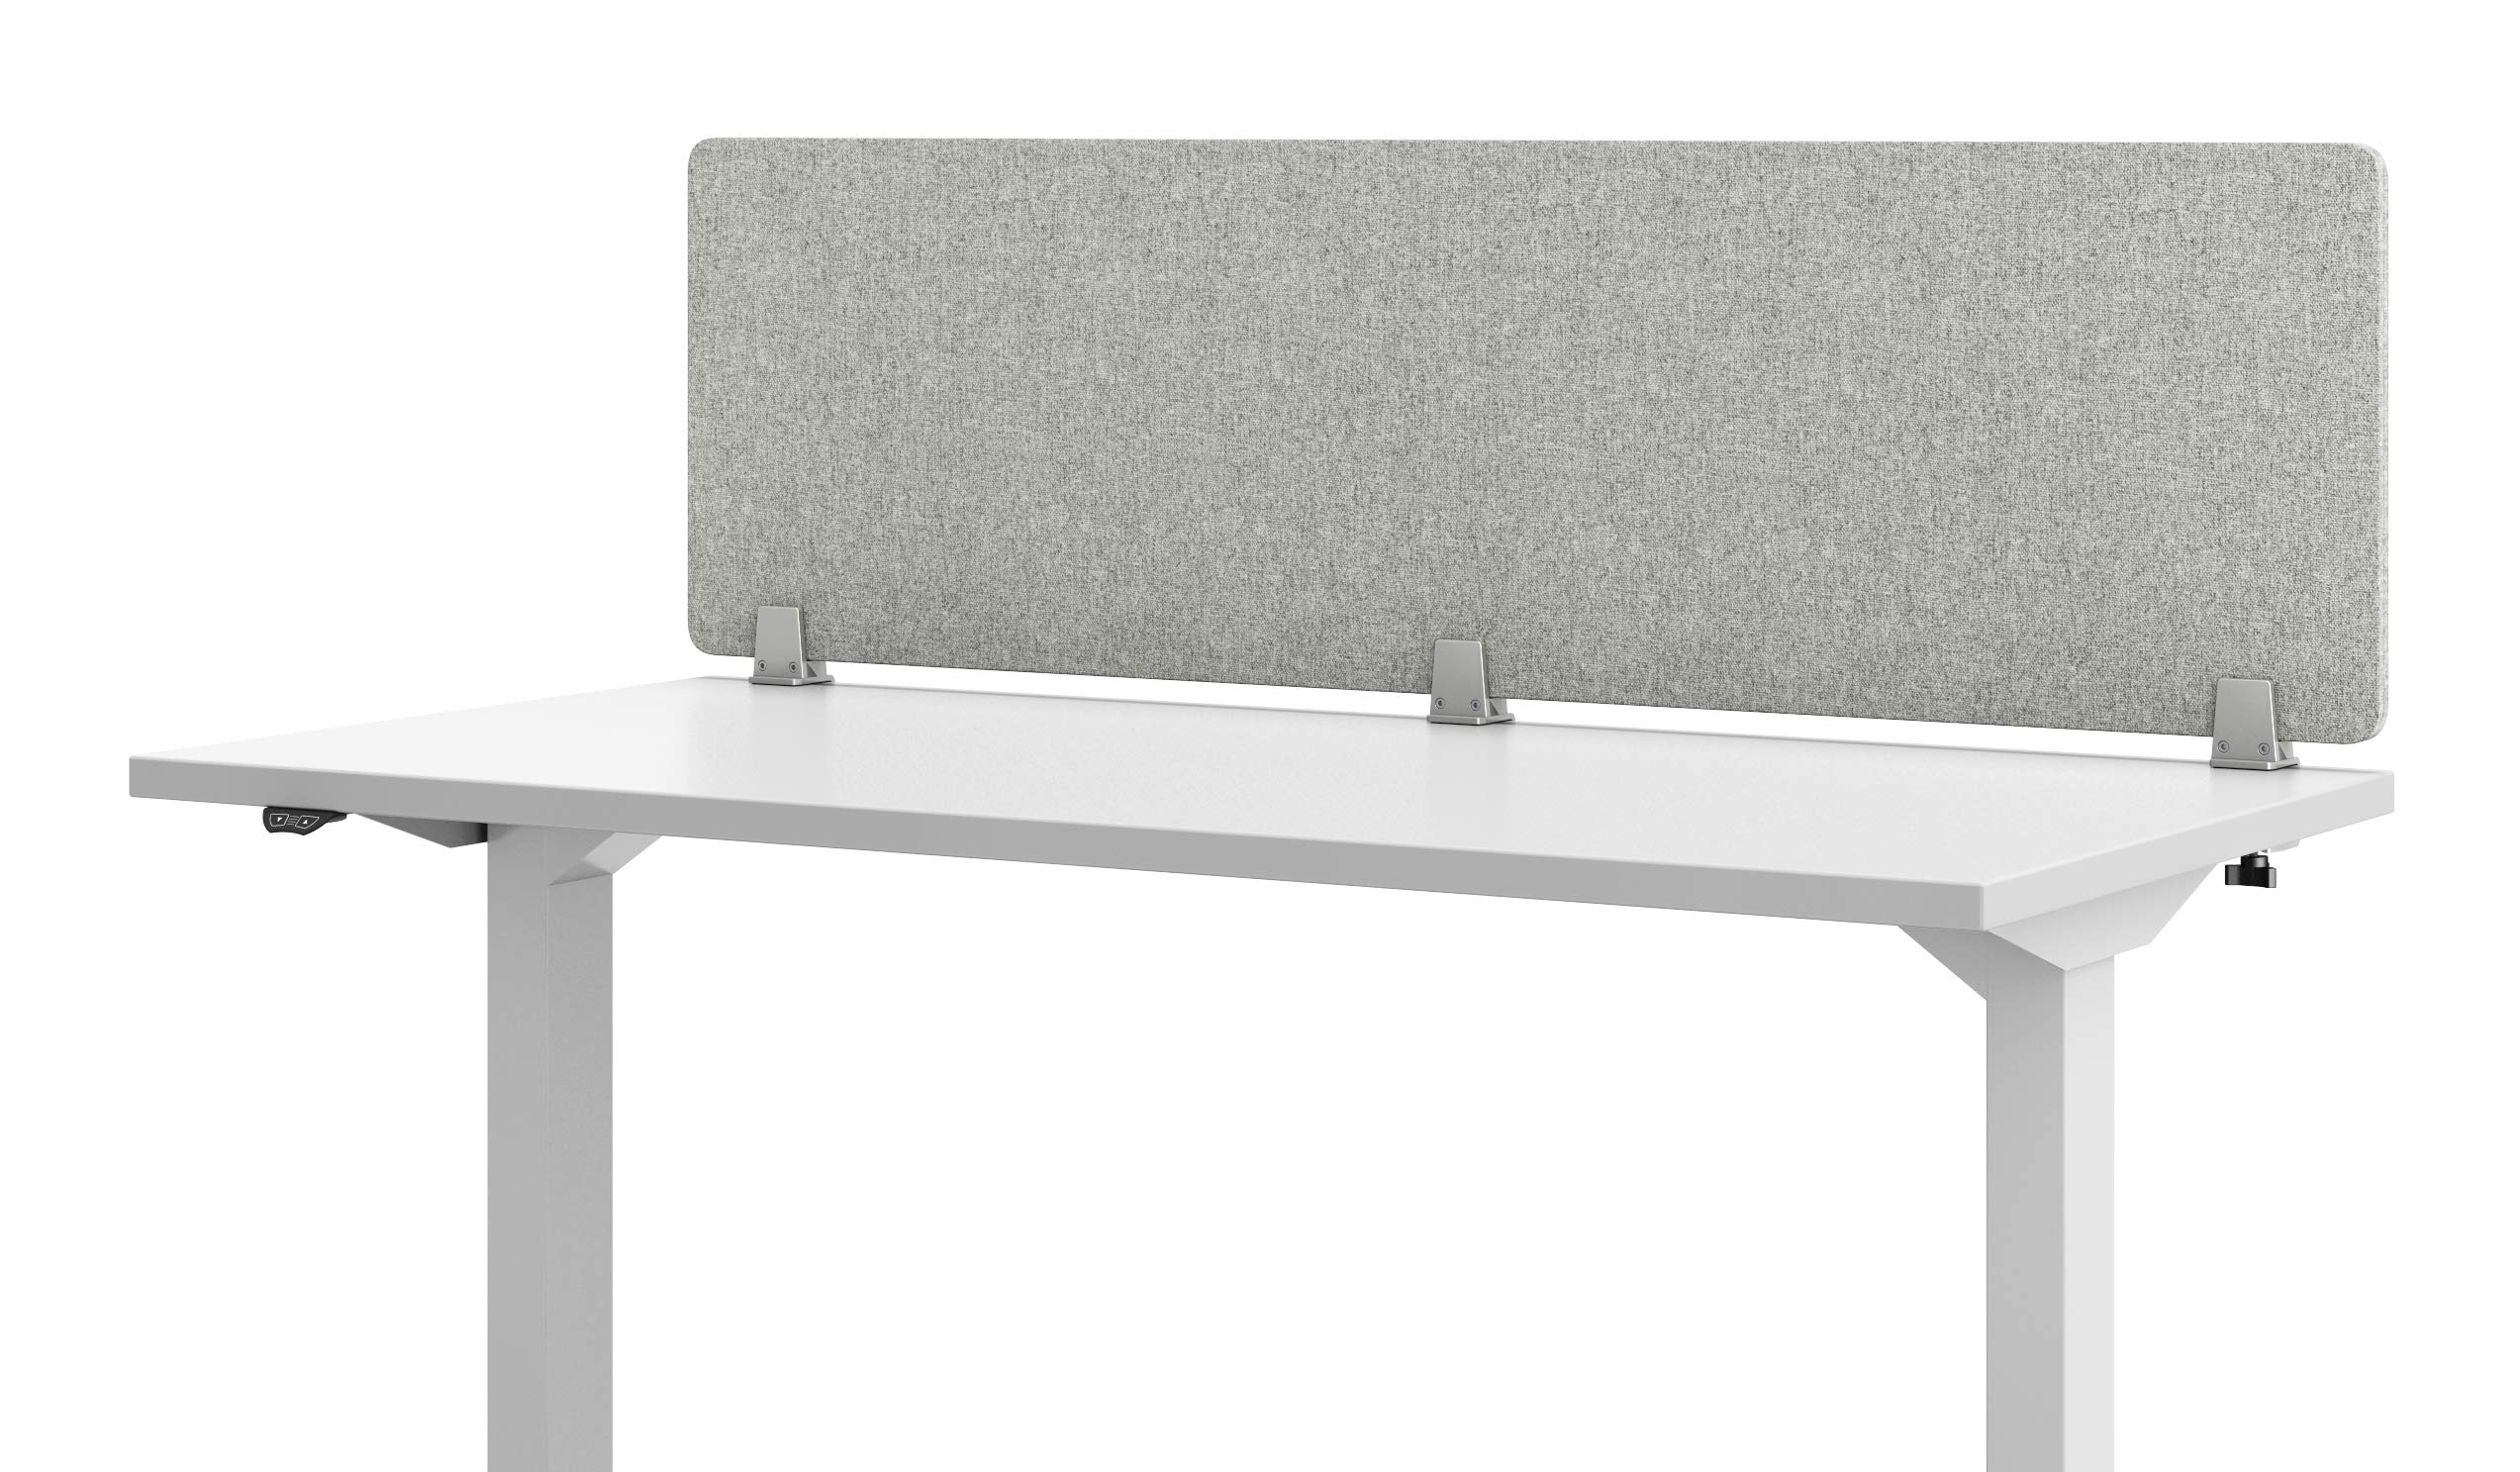 VaRoom Acoustic Desktop Privacy Divider, 60''W x 18''H Sound Absorbing Clamp-on Cubicle Desk Divider Partition Panel in Light Grey Tackable Fabric